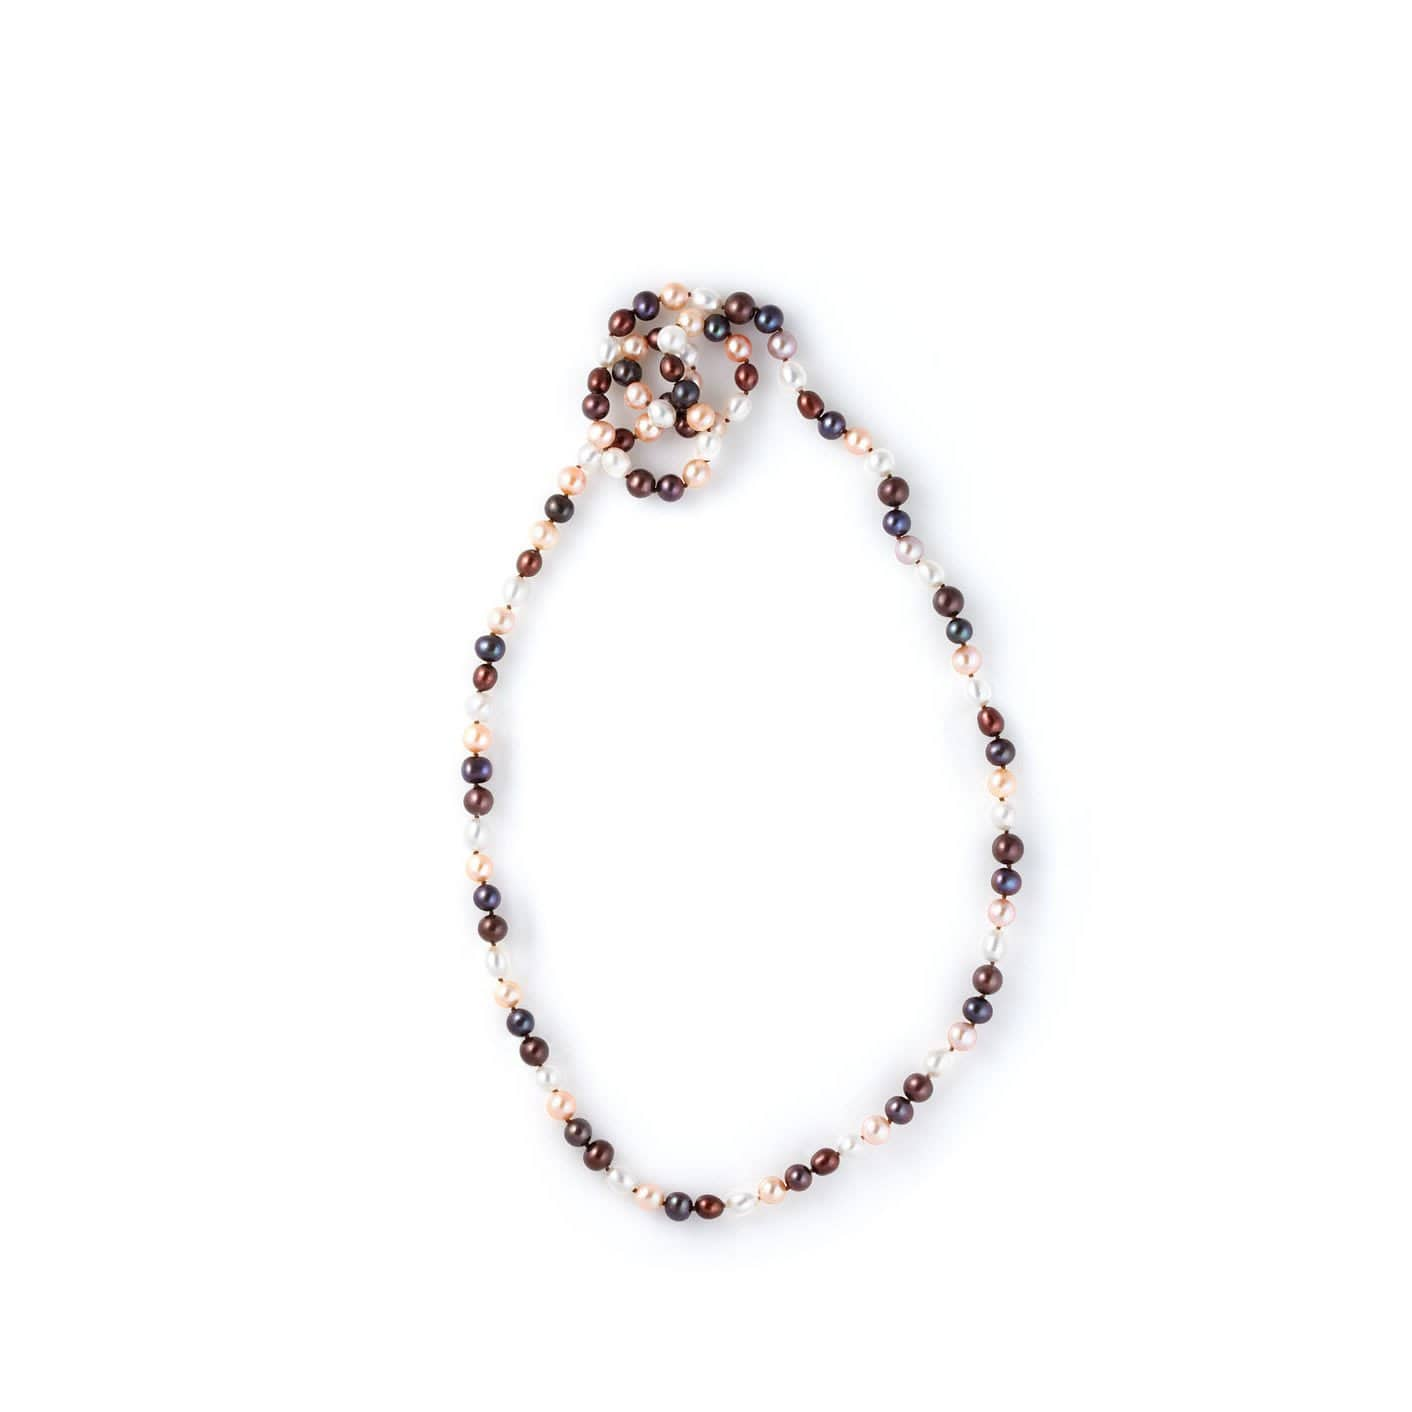 AIRE PEARL NECKLACE - MULTI-COLORED PEARL NECKLACE - Chris Aire Fine Jewelry & Timepieces